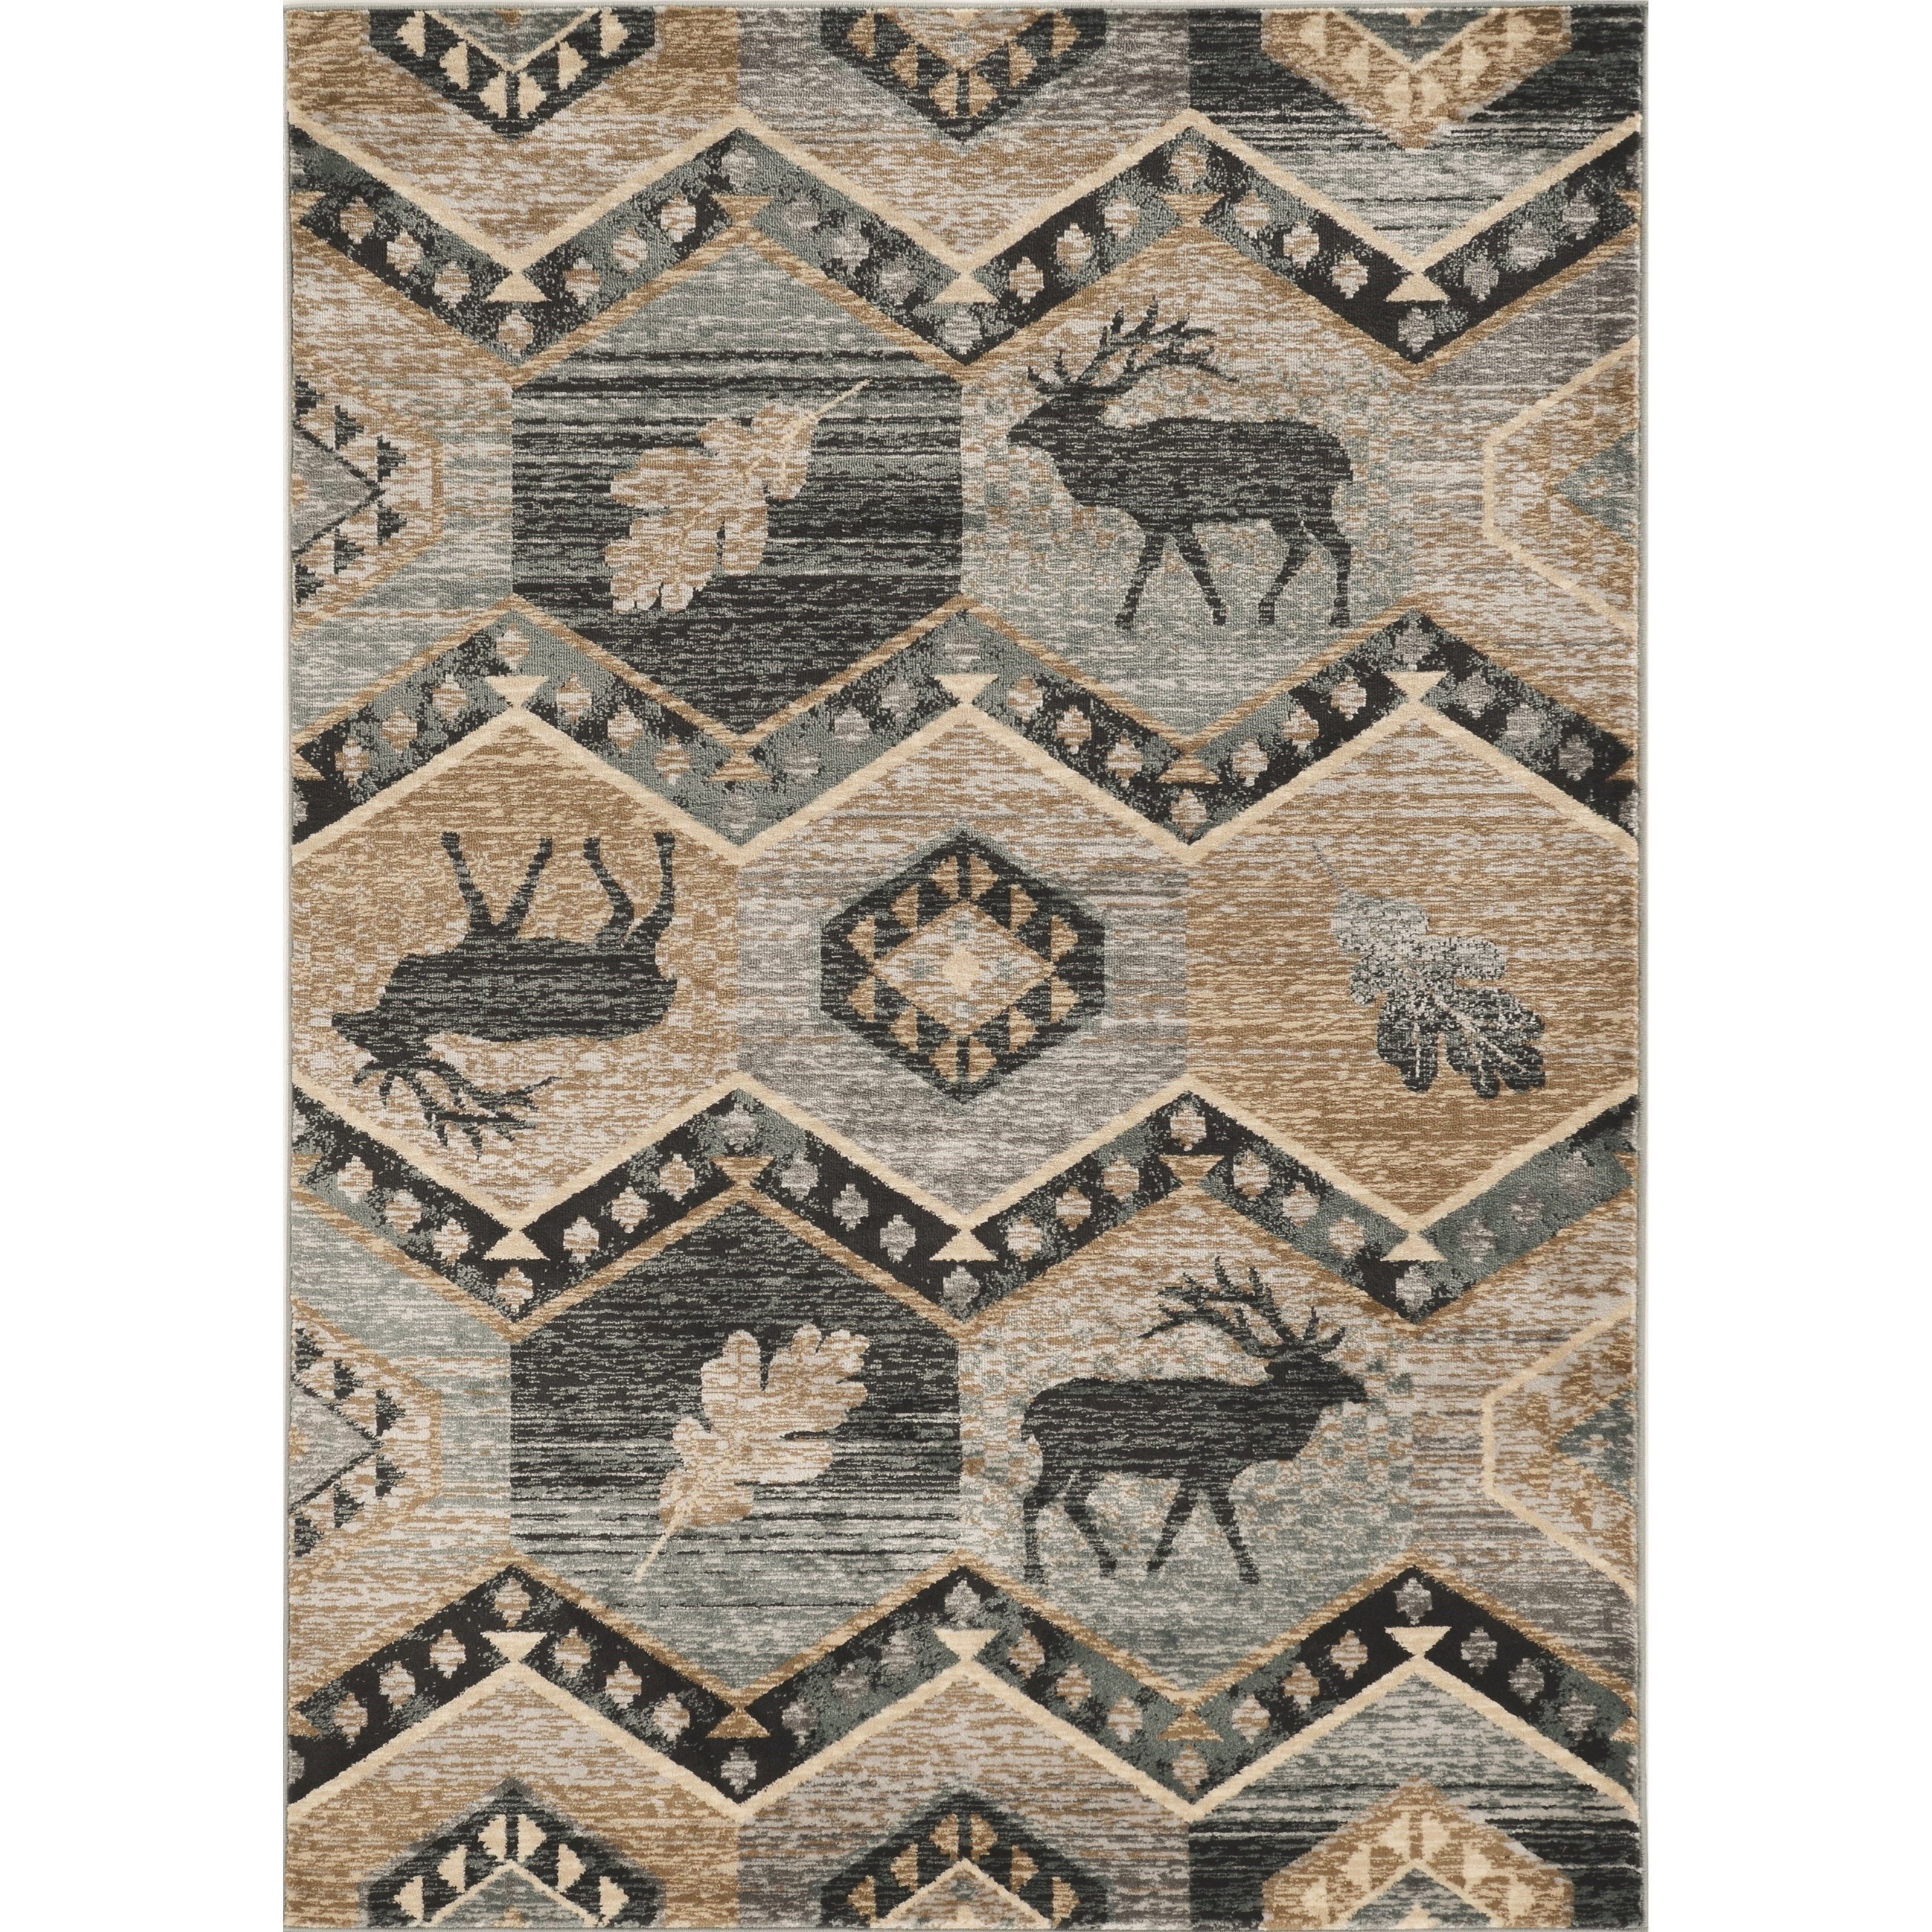 "Chester 3'3"" x 5'3"" Seafoam Woodlands Rug by Kas at Darvin Furniture"